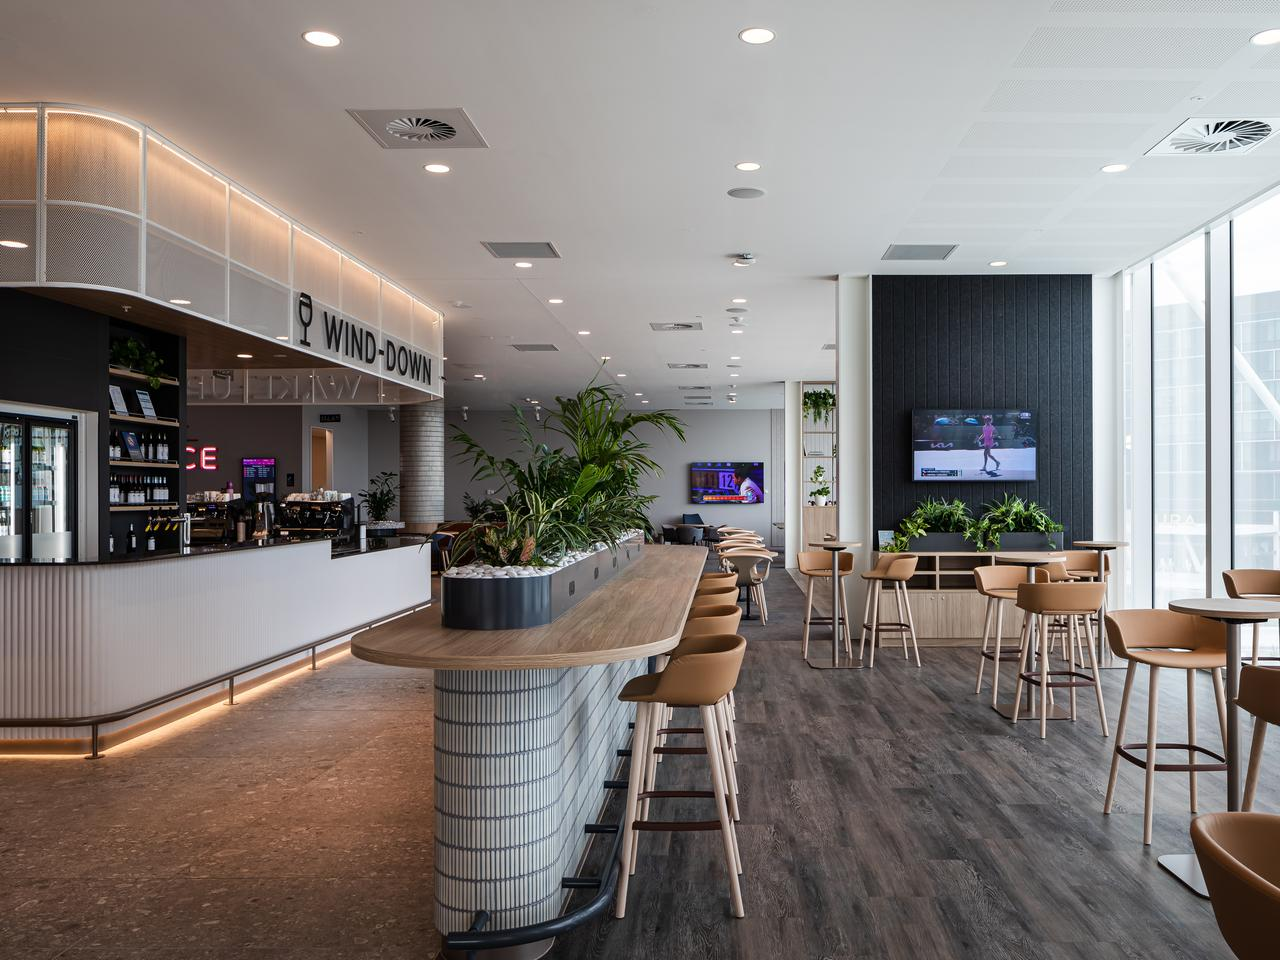 Virgin Australia General Manager Product and Customer Sarah Adam explained there were a number of different zones within the space to cater to all needs of their guests. Picture: Supplied / Virgin Australia